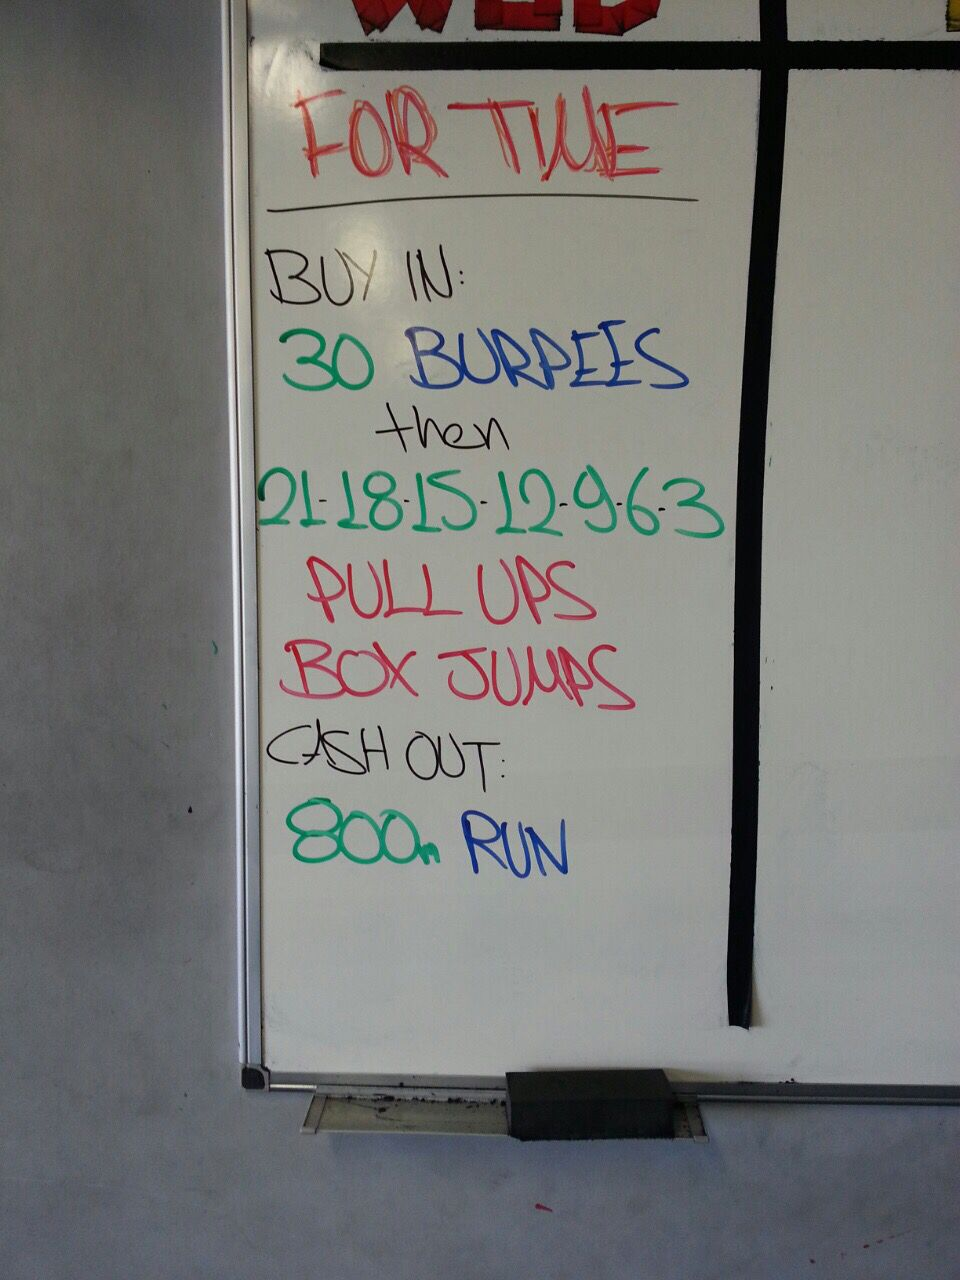 Friday  Crossfit workouts  Pinterest  Crossfit Workout and